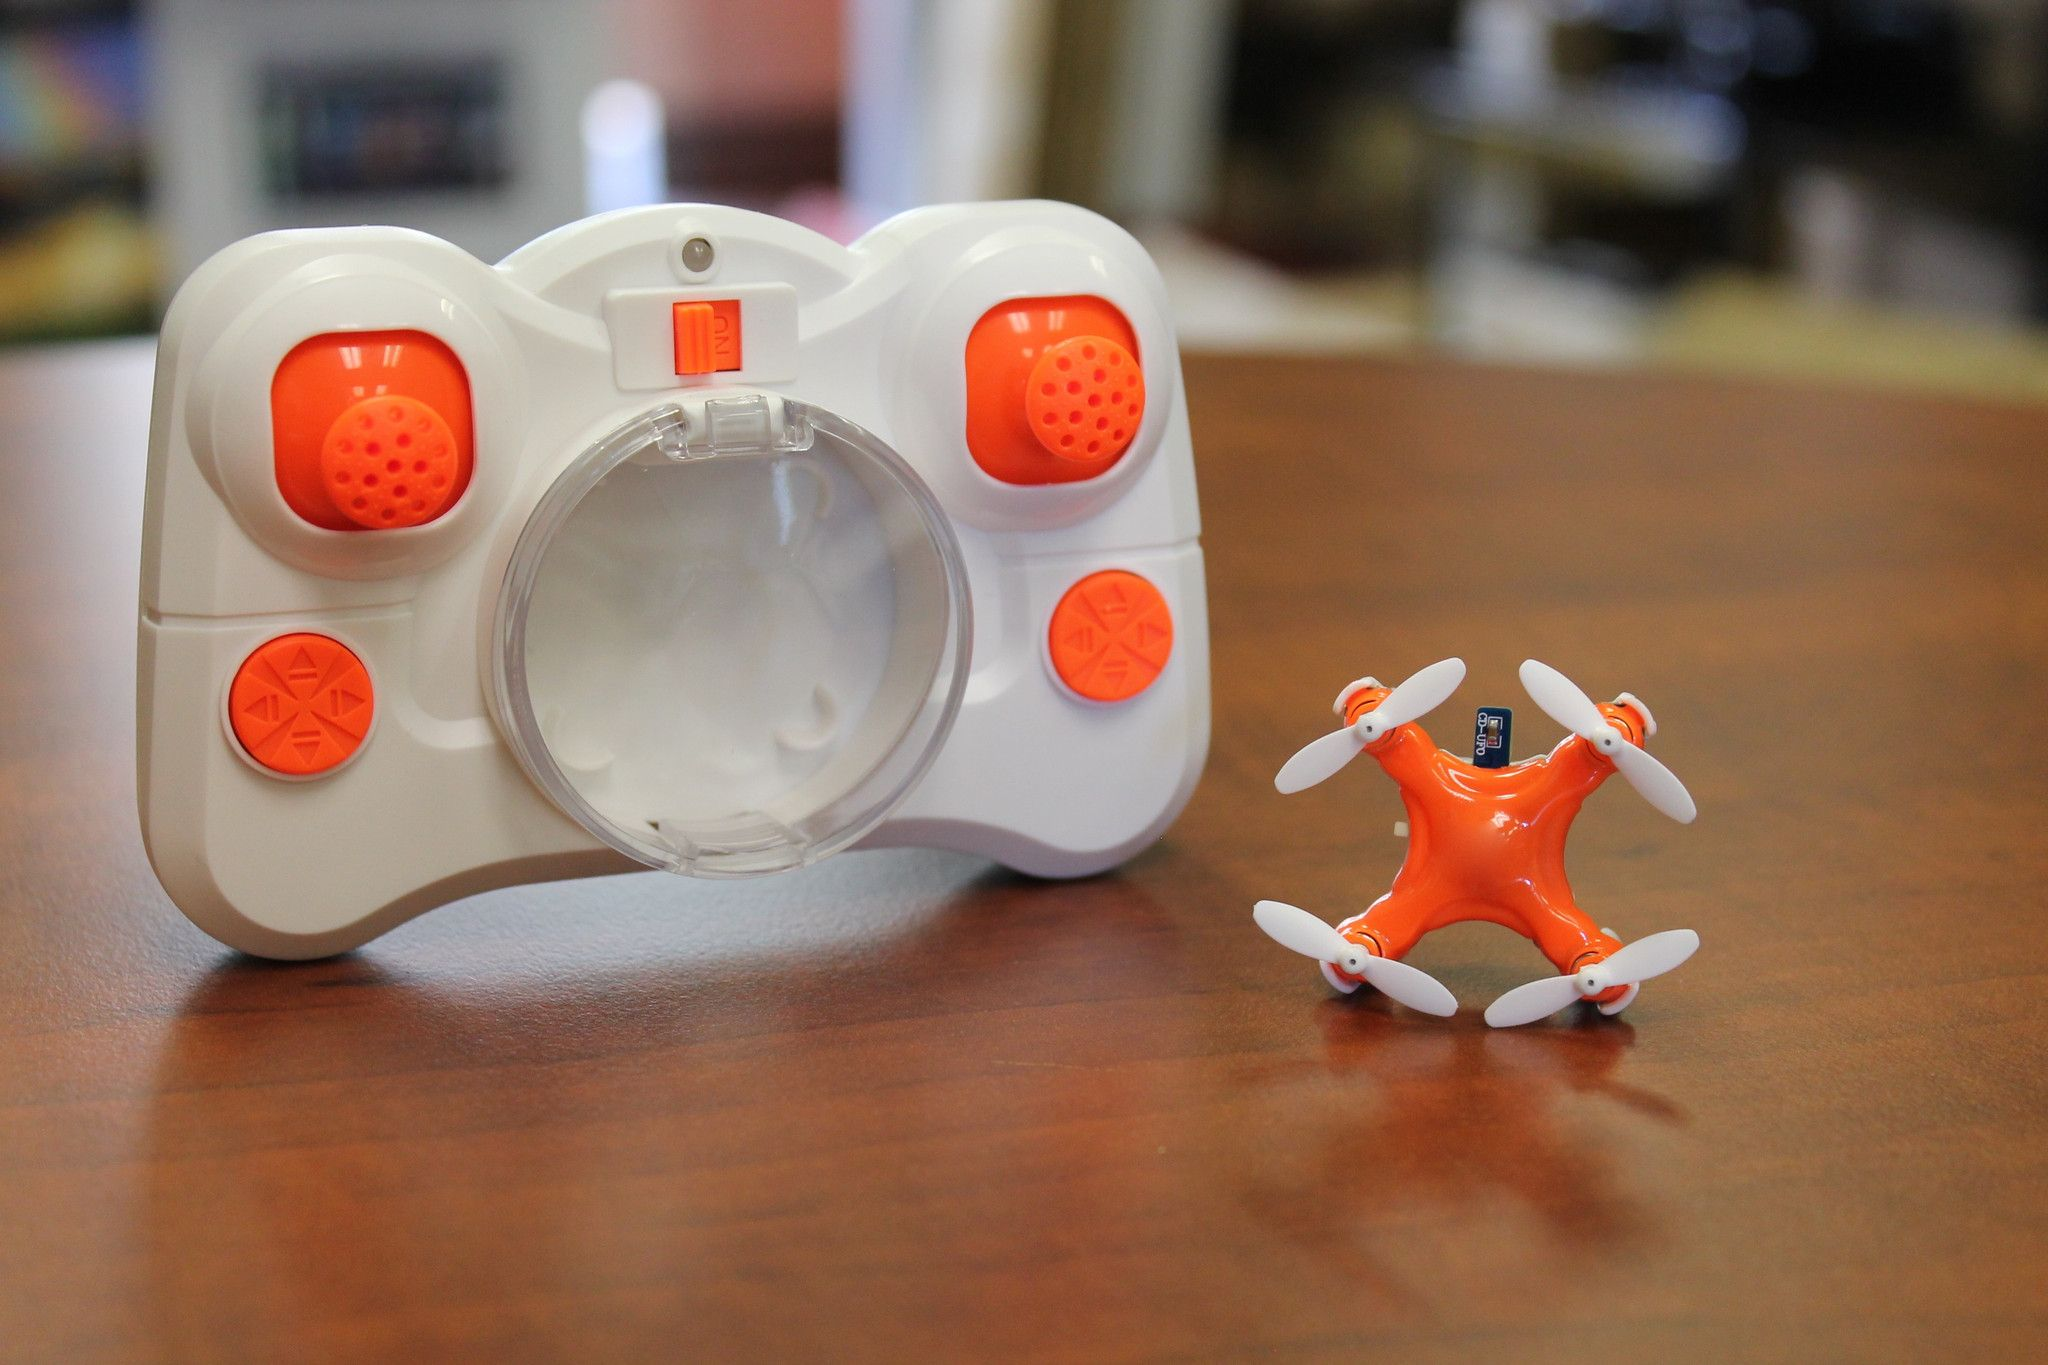 AERIUS: The New Worlds Smallest Quadcopter » Gadget Flow